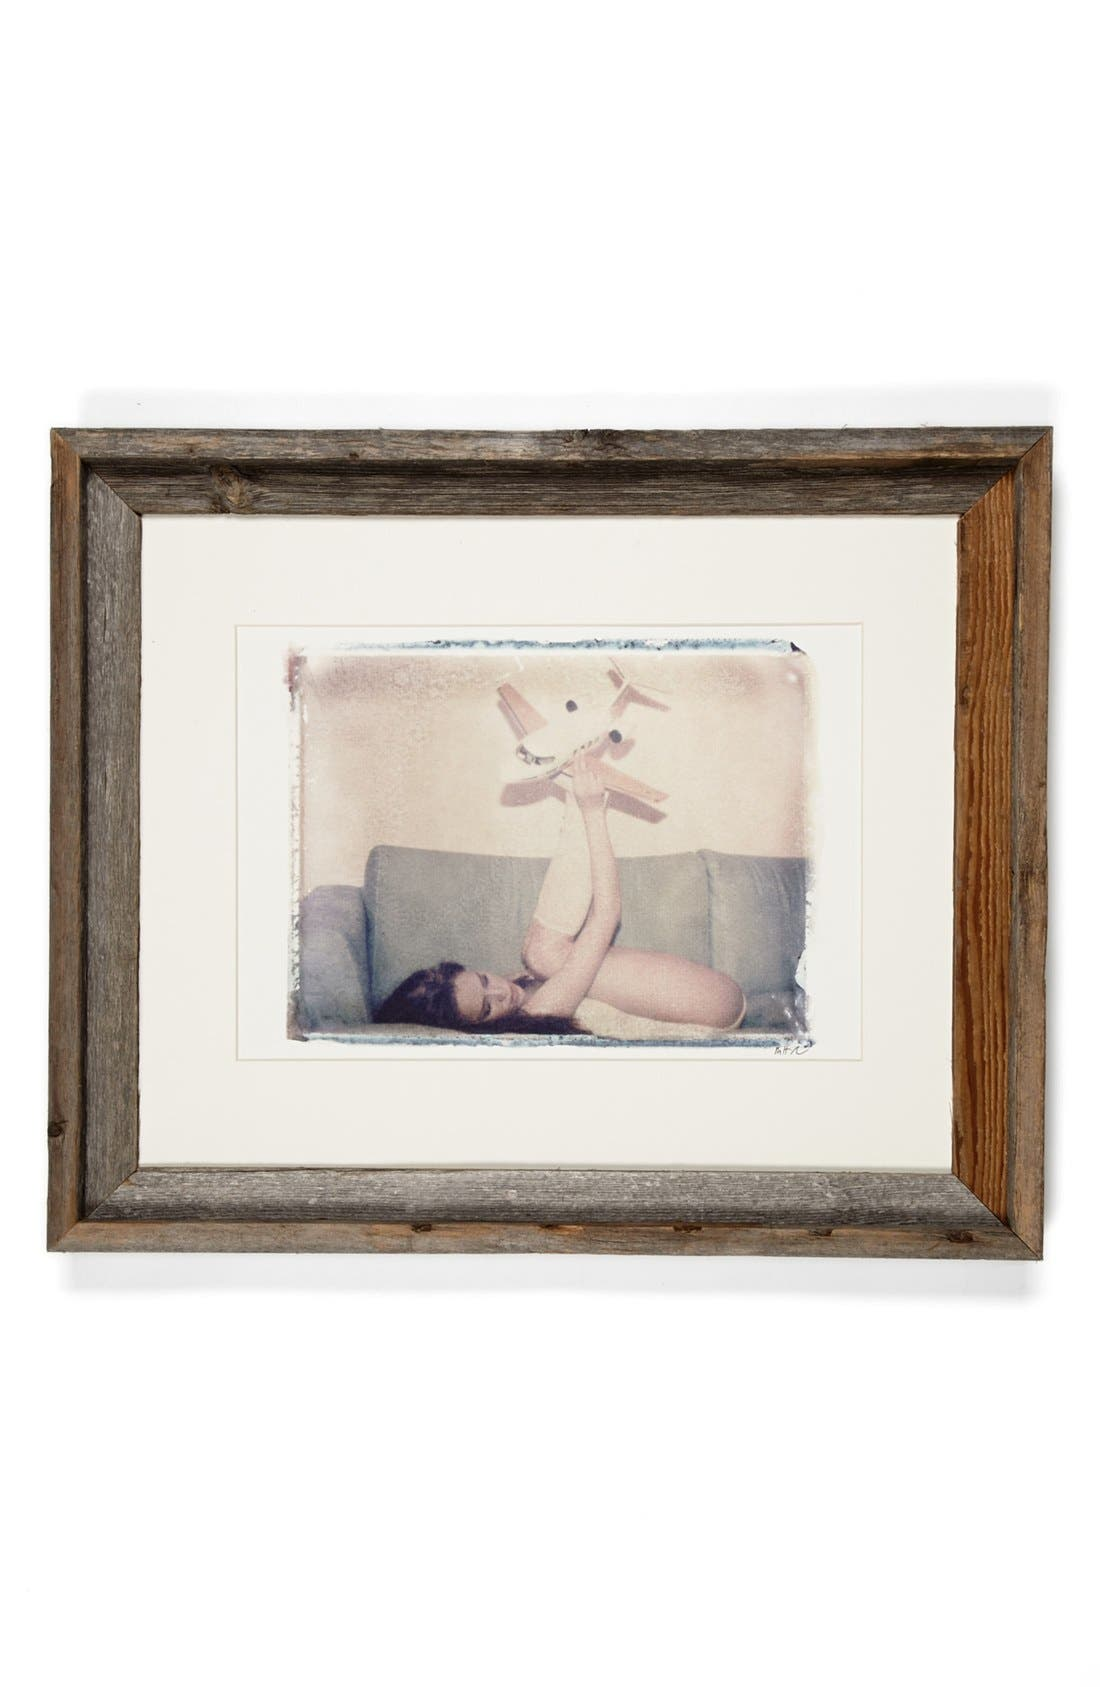 Alternate Image 1 Selected - She Hit Pause Studios 'Girl with Plane' Wall Art